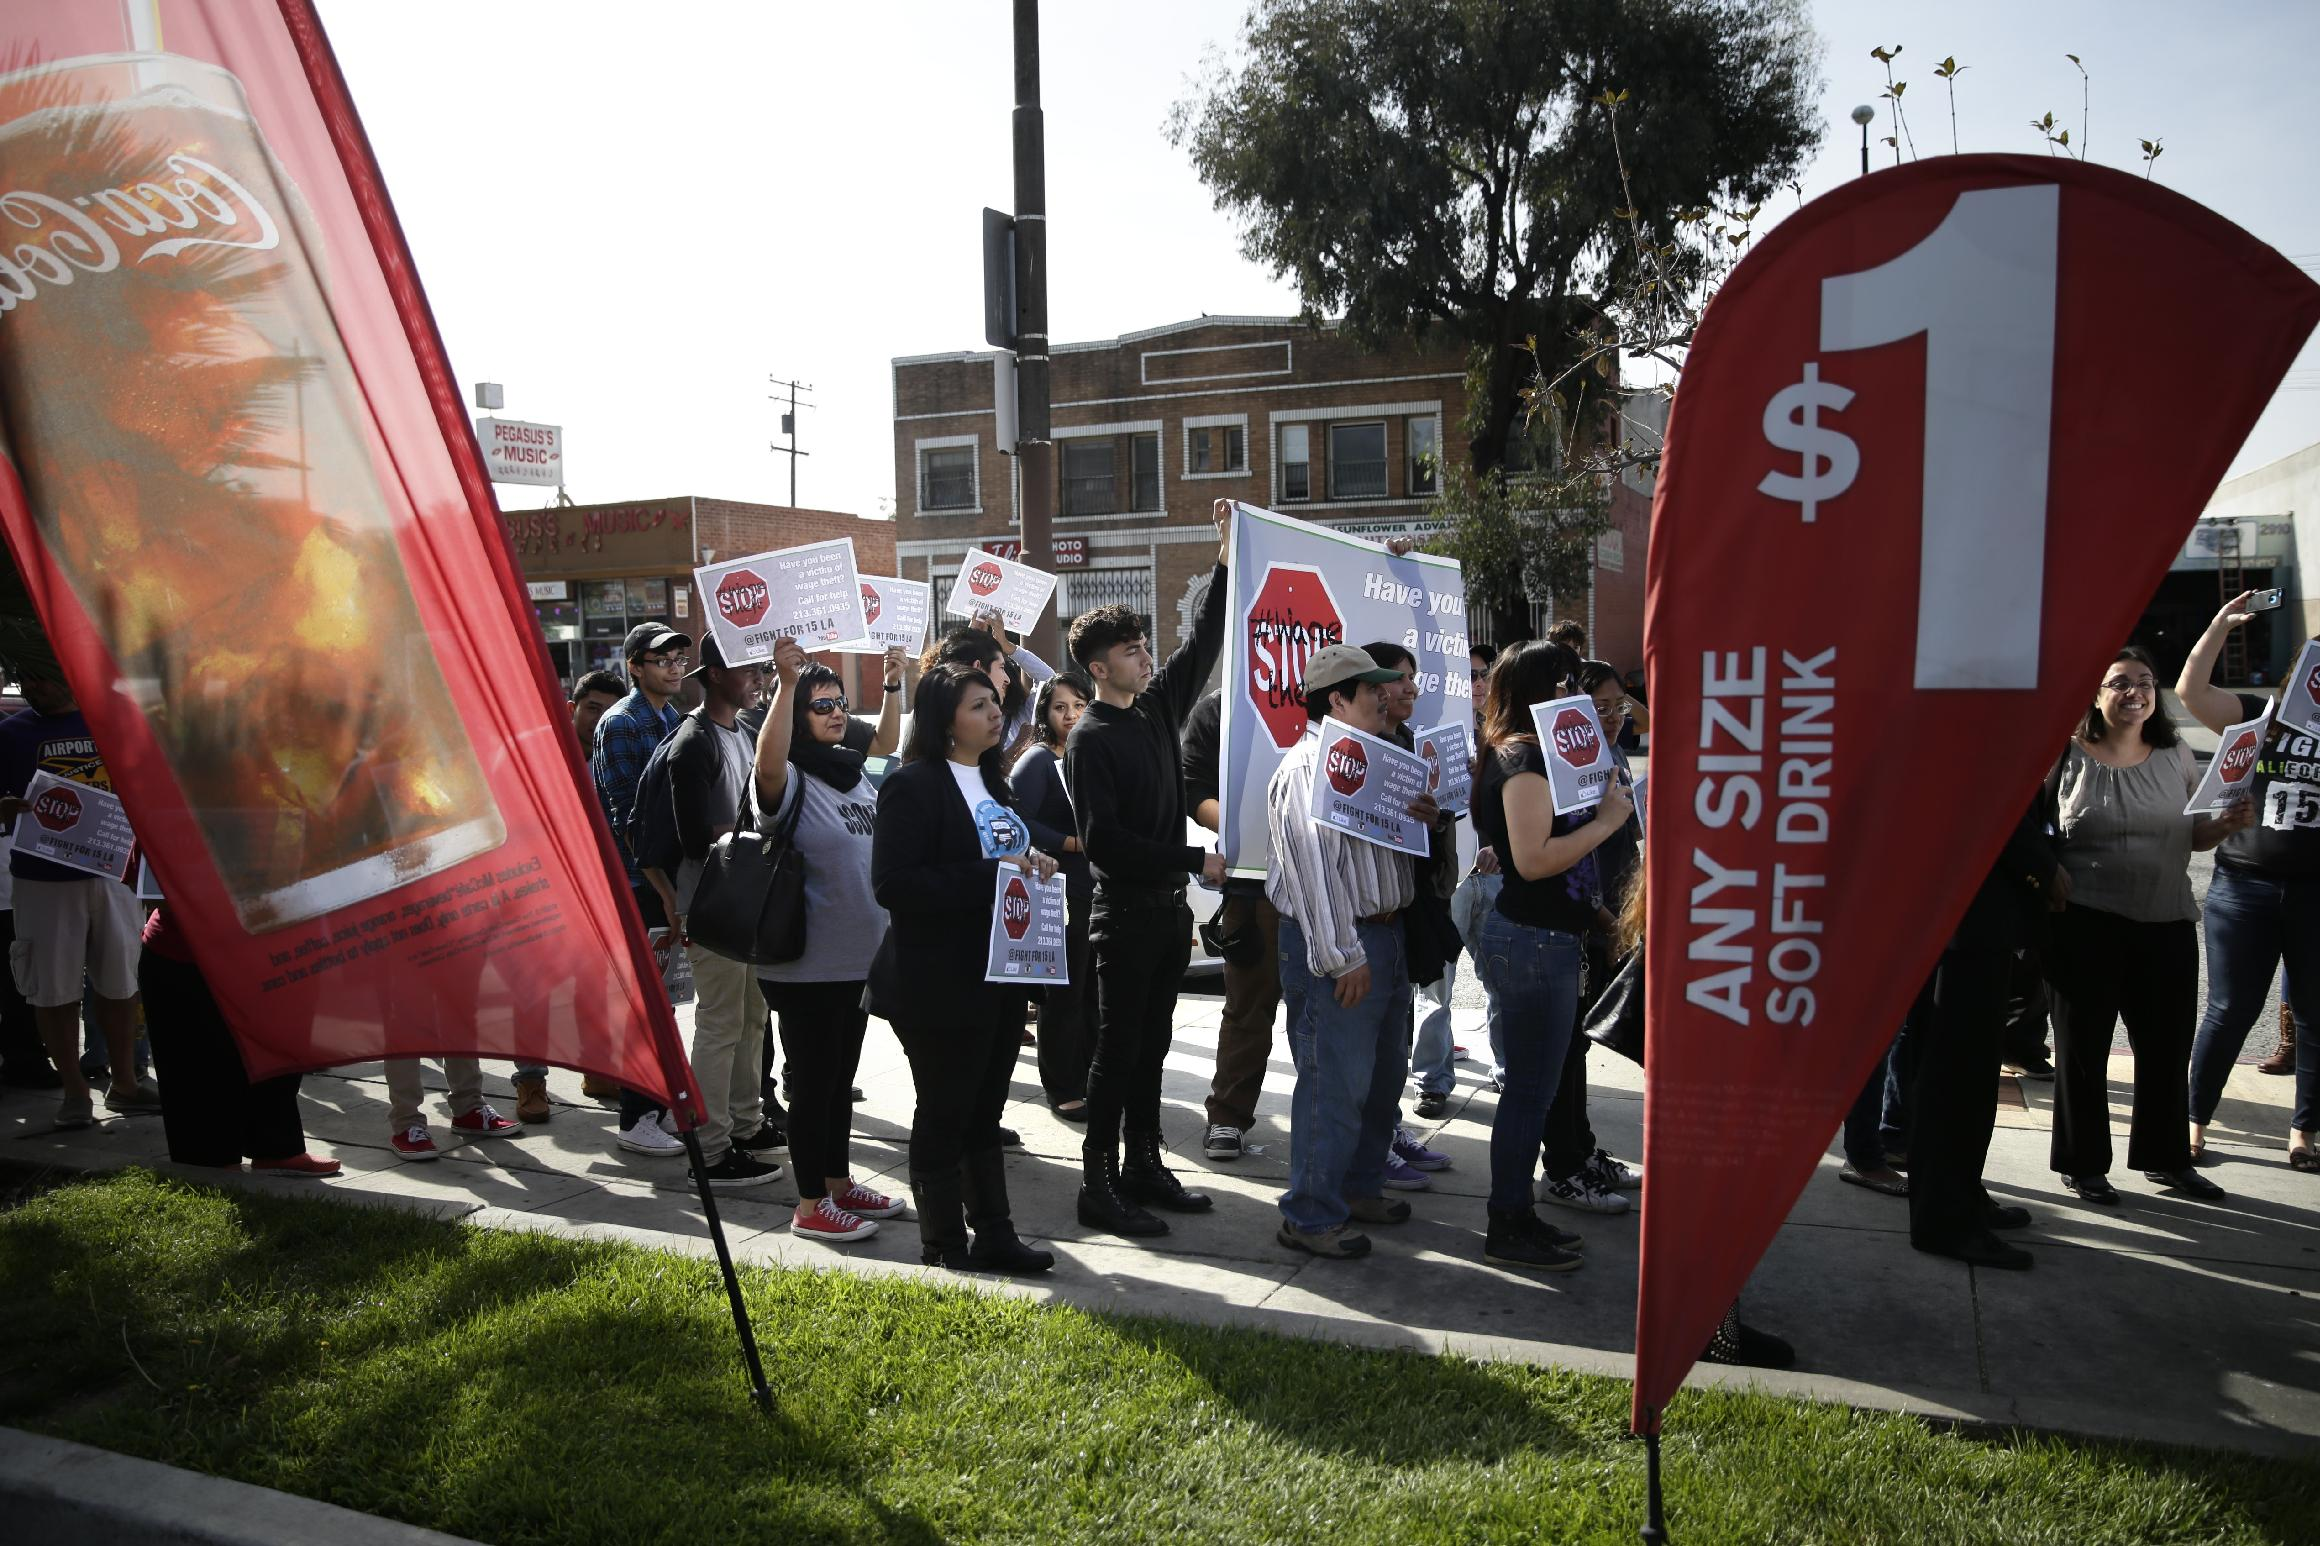 Fast-food workers sue McDonald's, claim wage theft